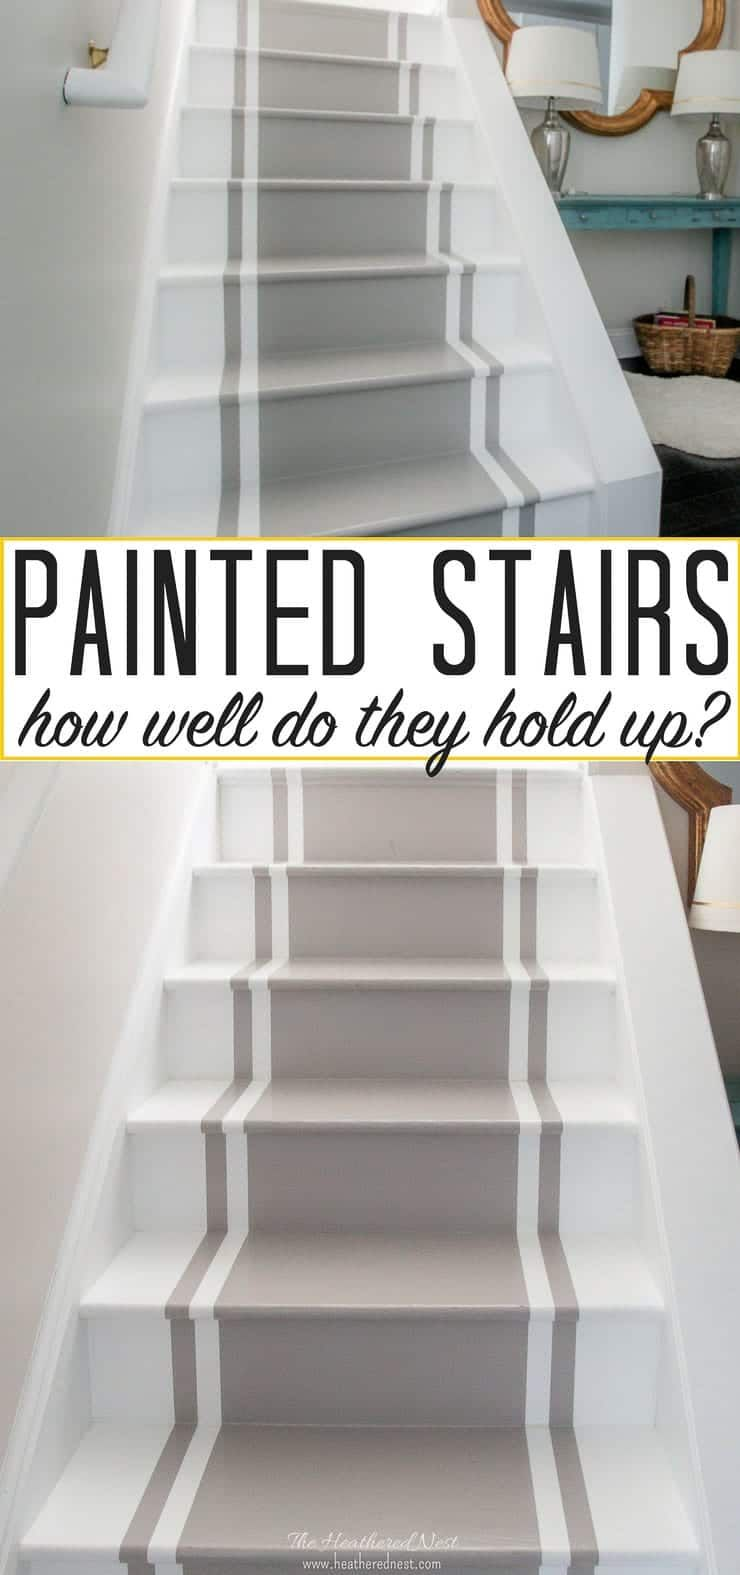 Pros And Cons Of Painted Stairs How Do They Hold Up Over The